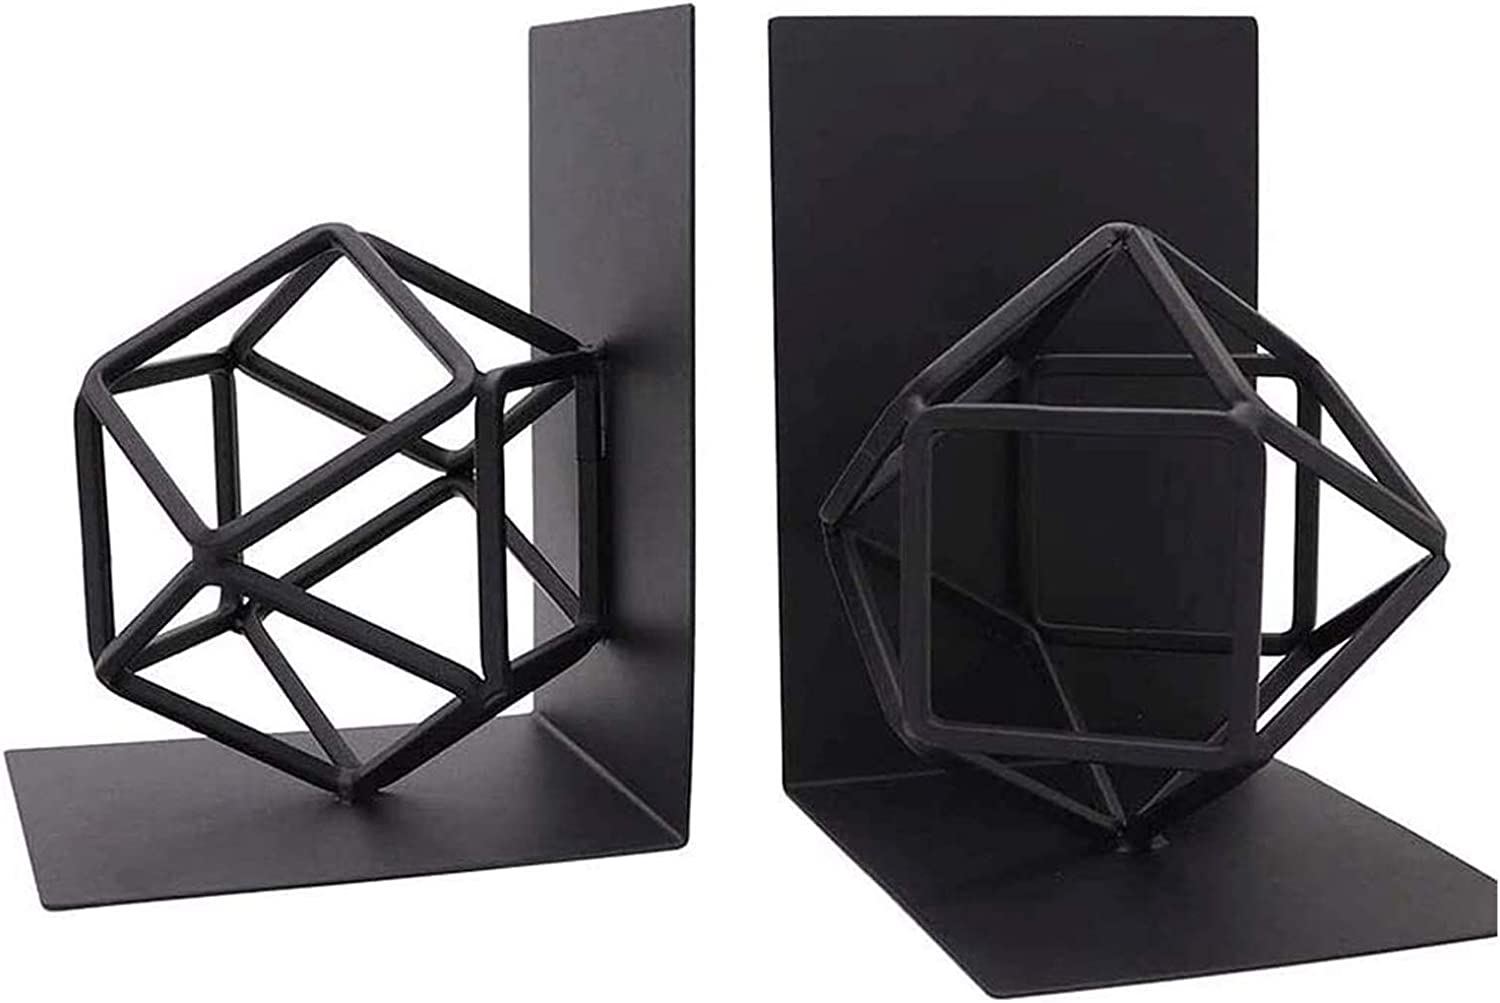 Max 83% OFF WANGLX Decorative Opening large release sale Bookends Book Stopper Me Books Ends for